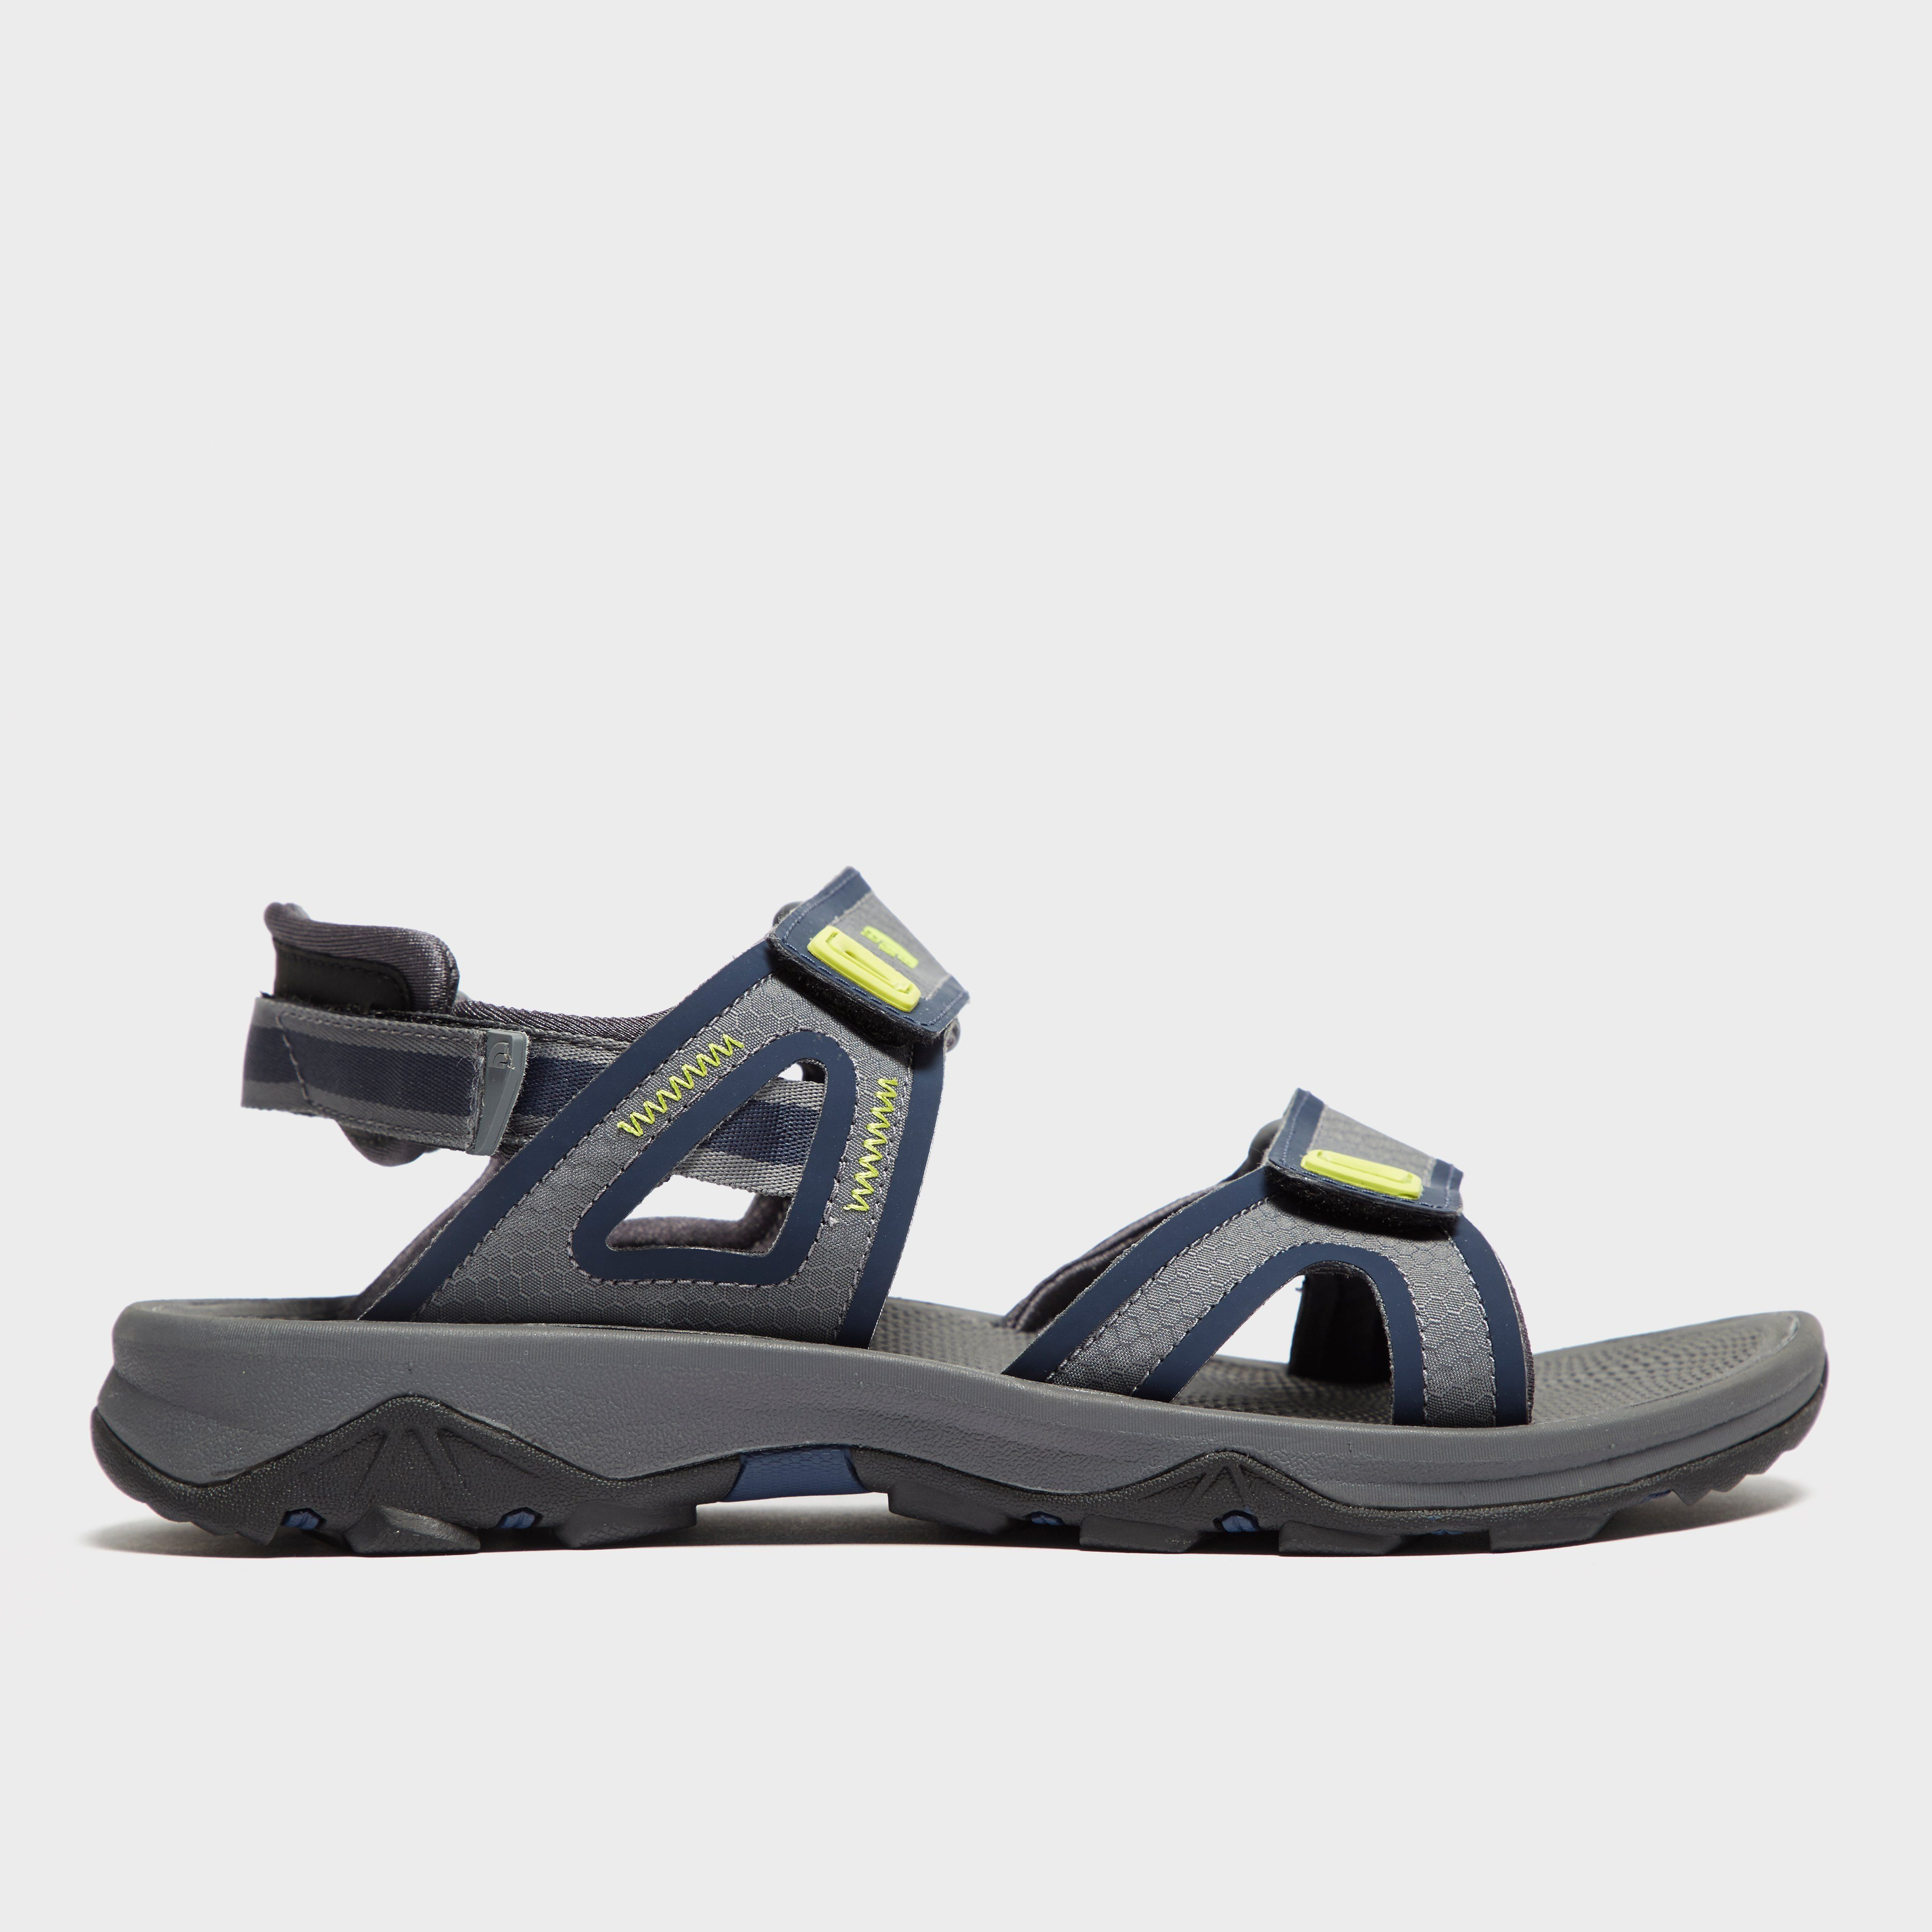 THE NORTH FACE Men's Hedgehog Sandals